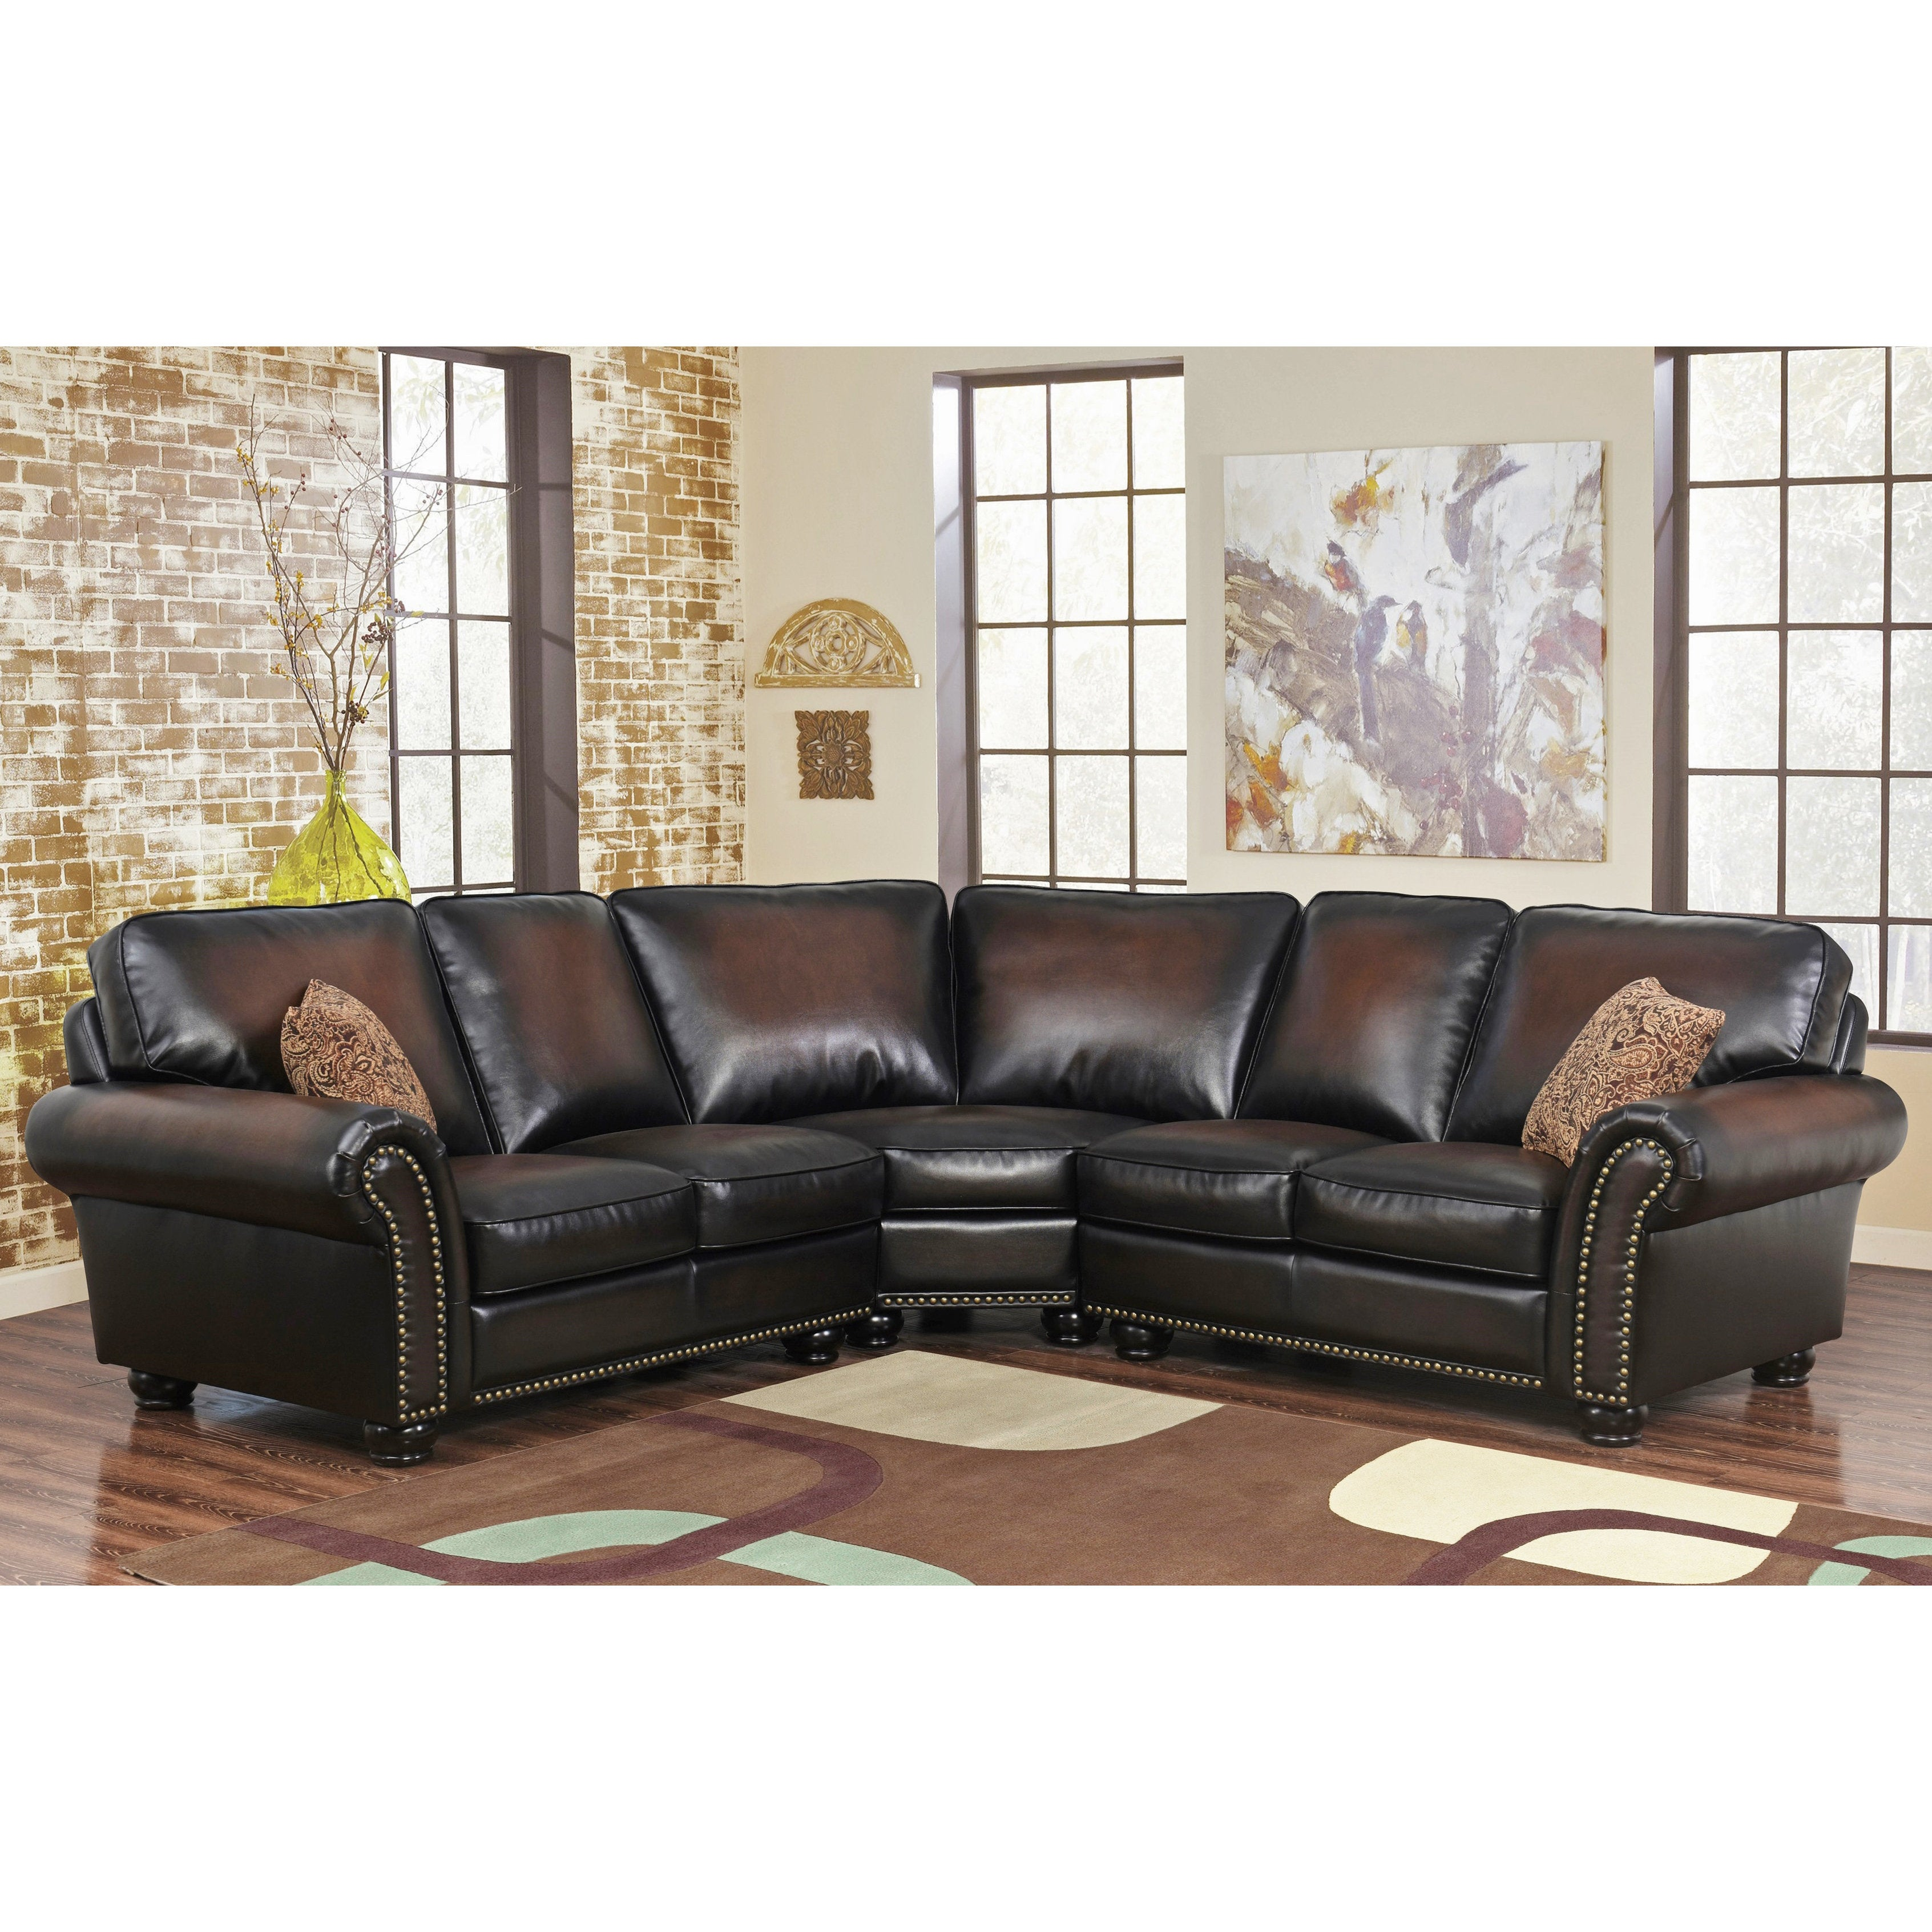 Superb Abbyson Melrose Bonded Leather 3 Piece Sectional Ocoug Best Dining Table And Chair Ideas Images Ocougorg